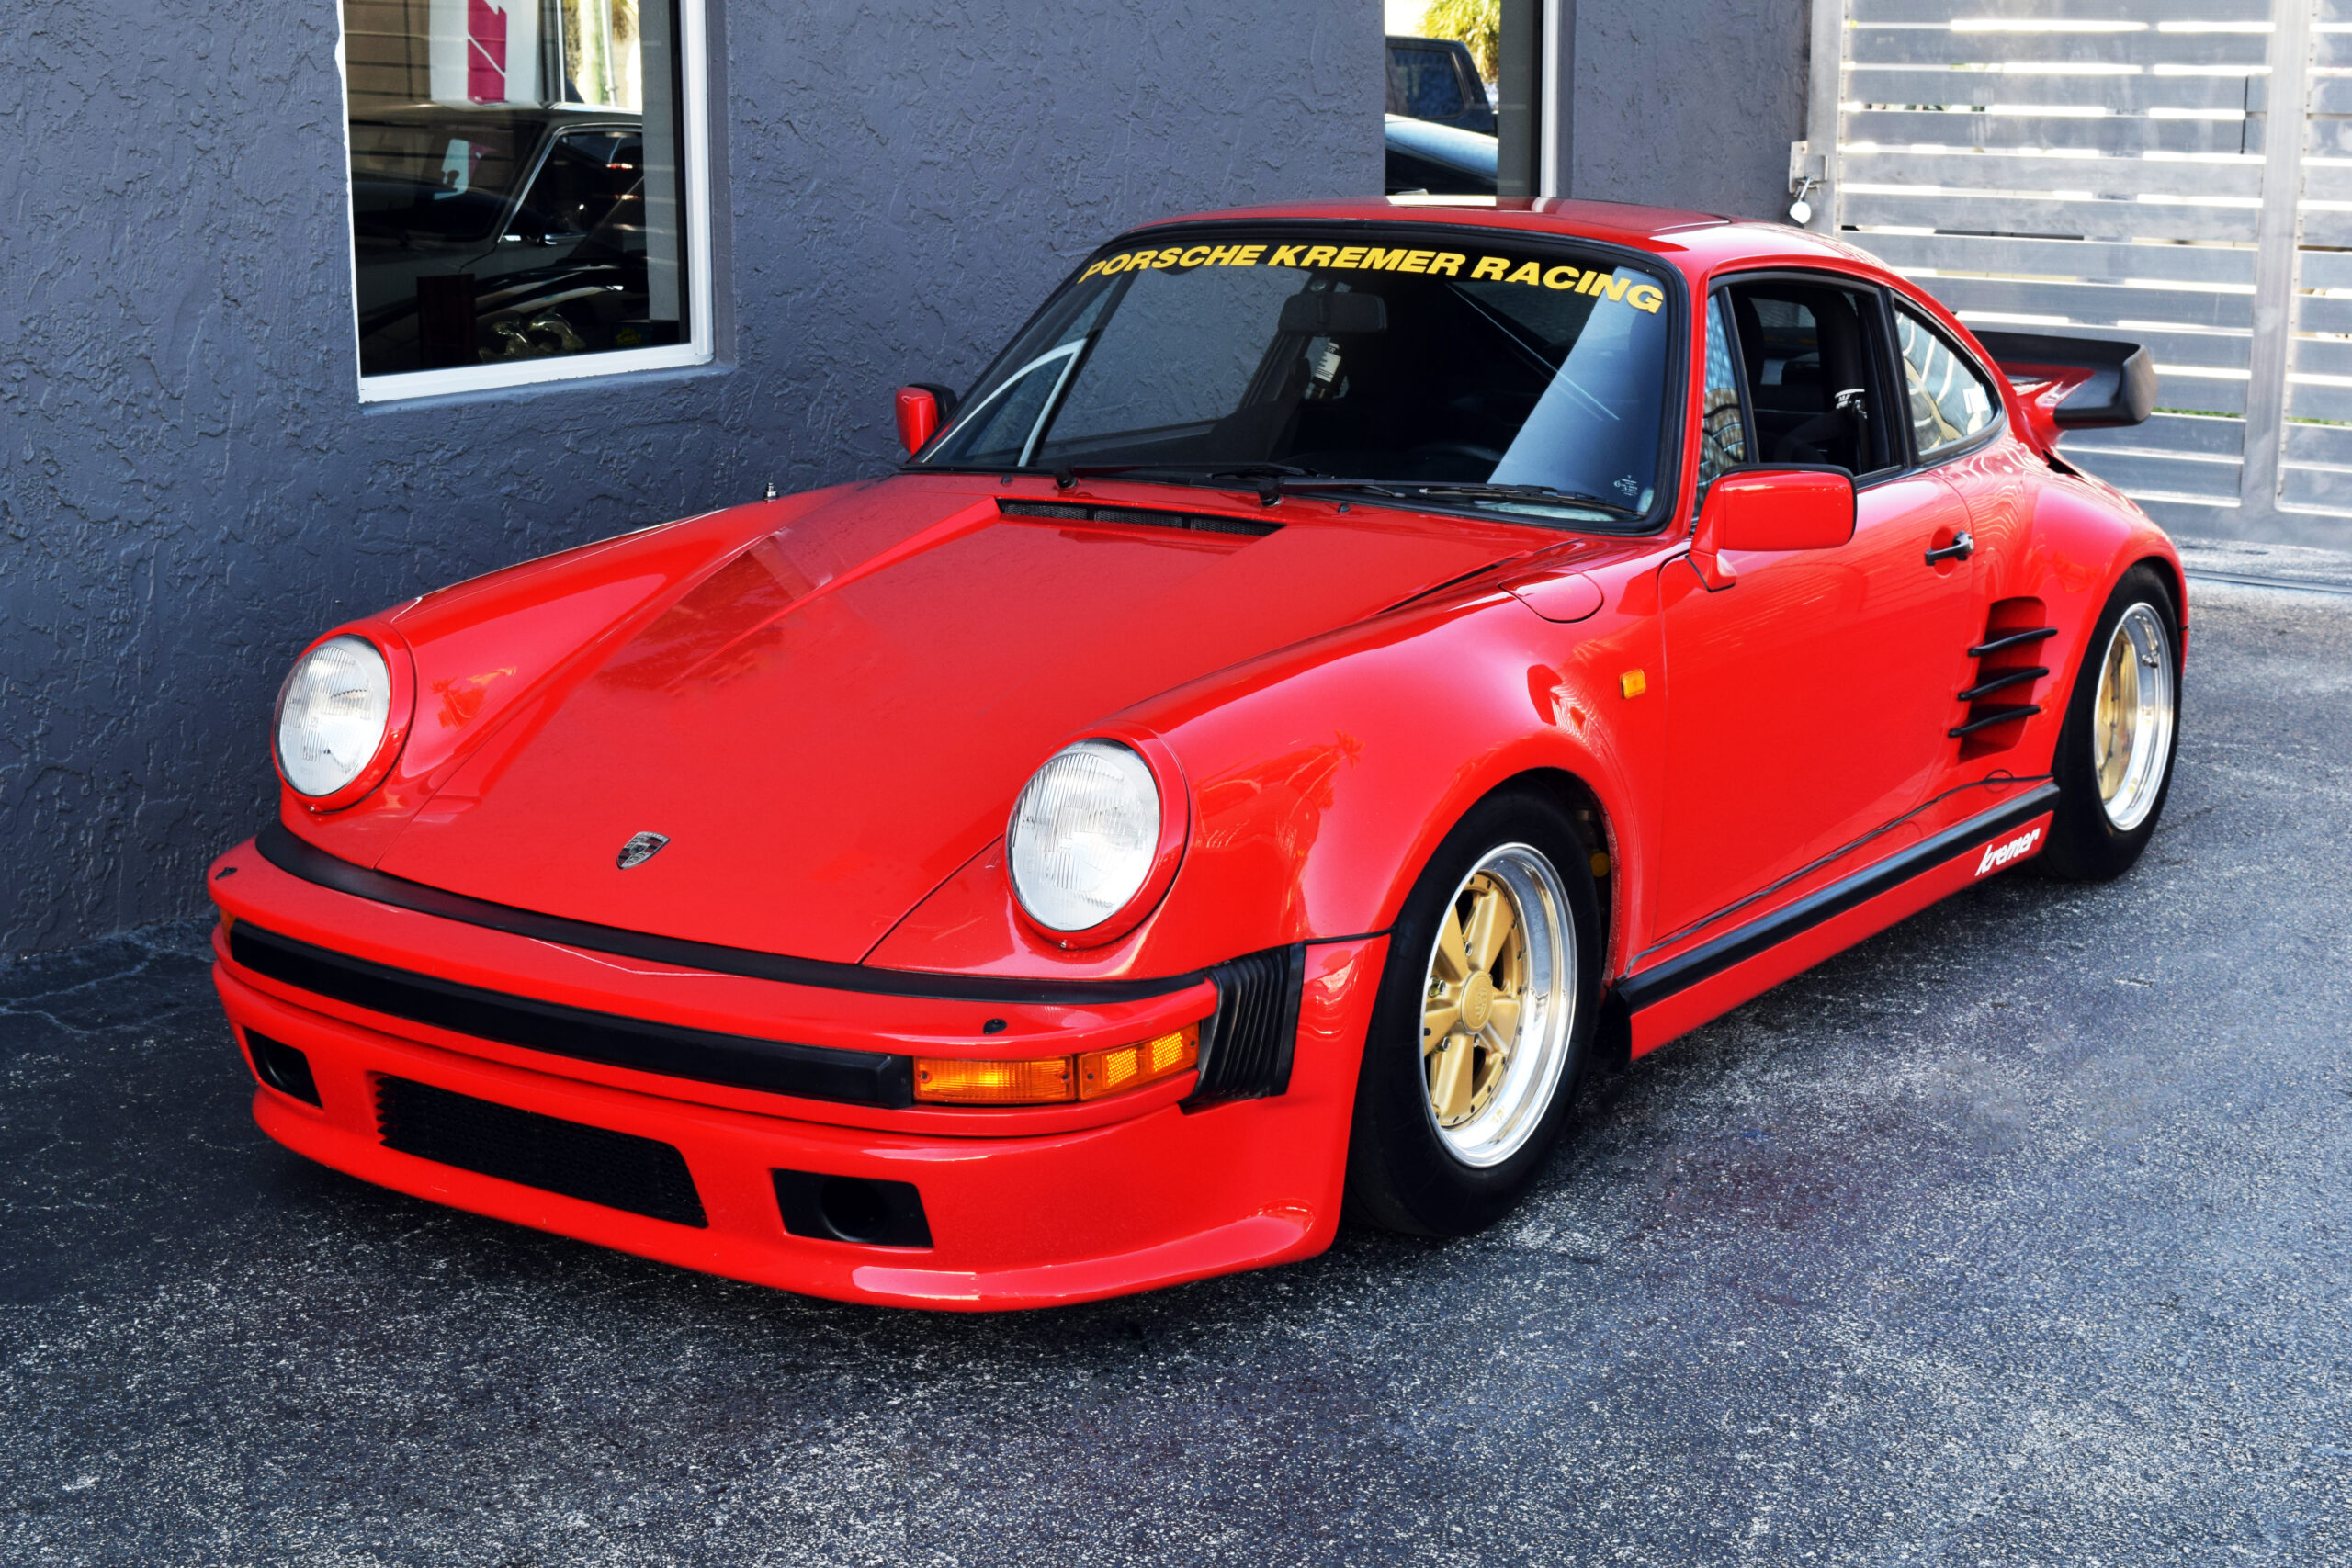 1984 911 Turbo (930) Kremer, real deal #046 3.5-liter engine, NACA ducts, Compomotive wheels, DP/935 Lollipop seats, Matter Cage